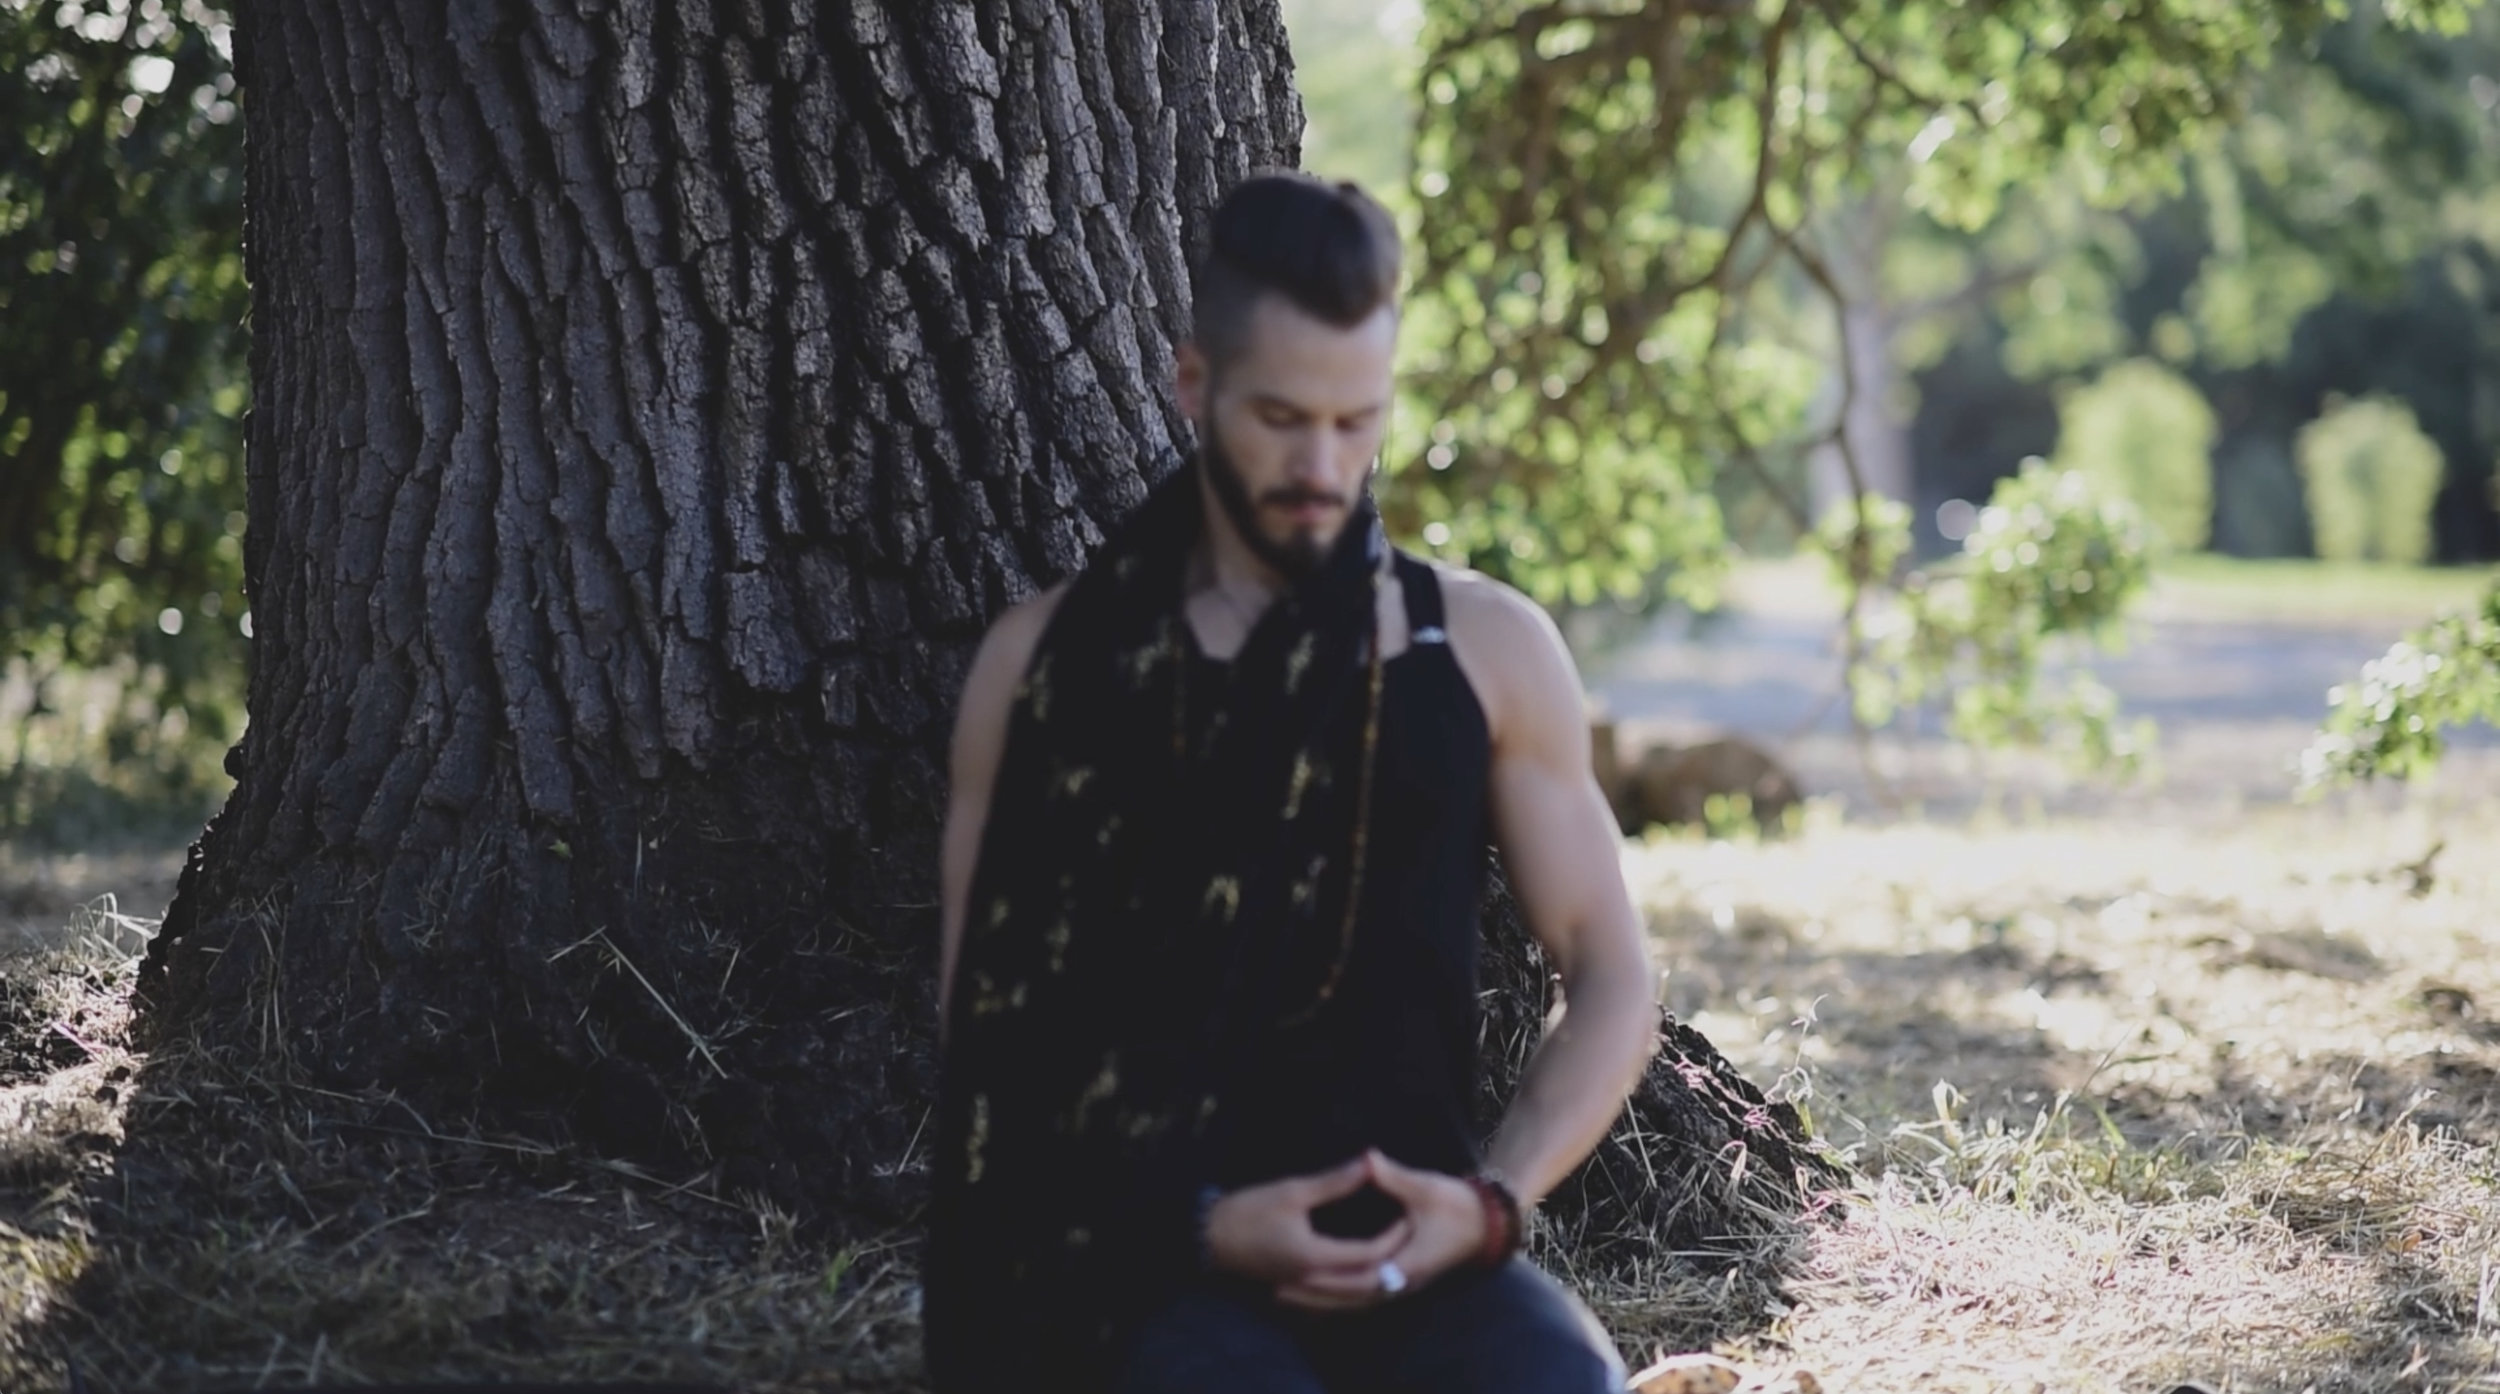 Spiritual hipster incarnate... Seated meditation under a tree harnessing inner wisdom.